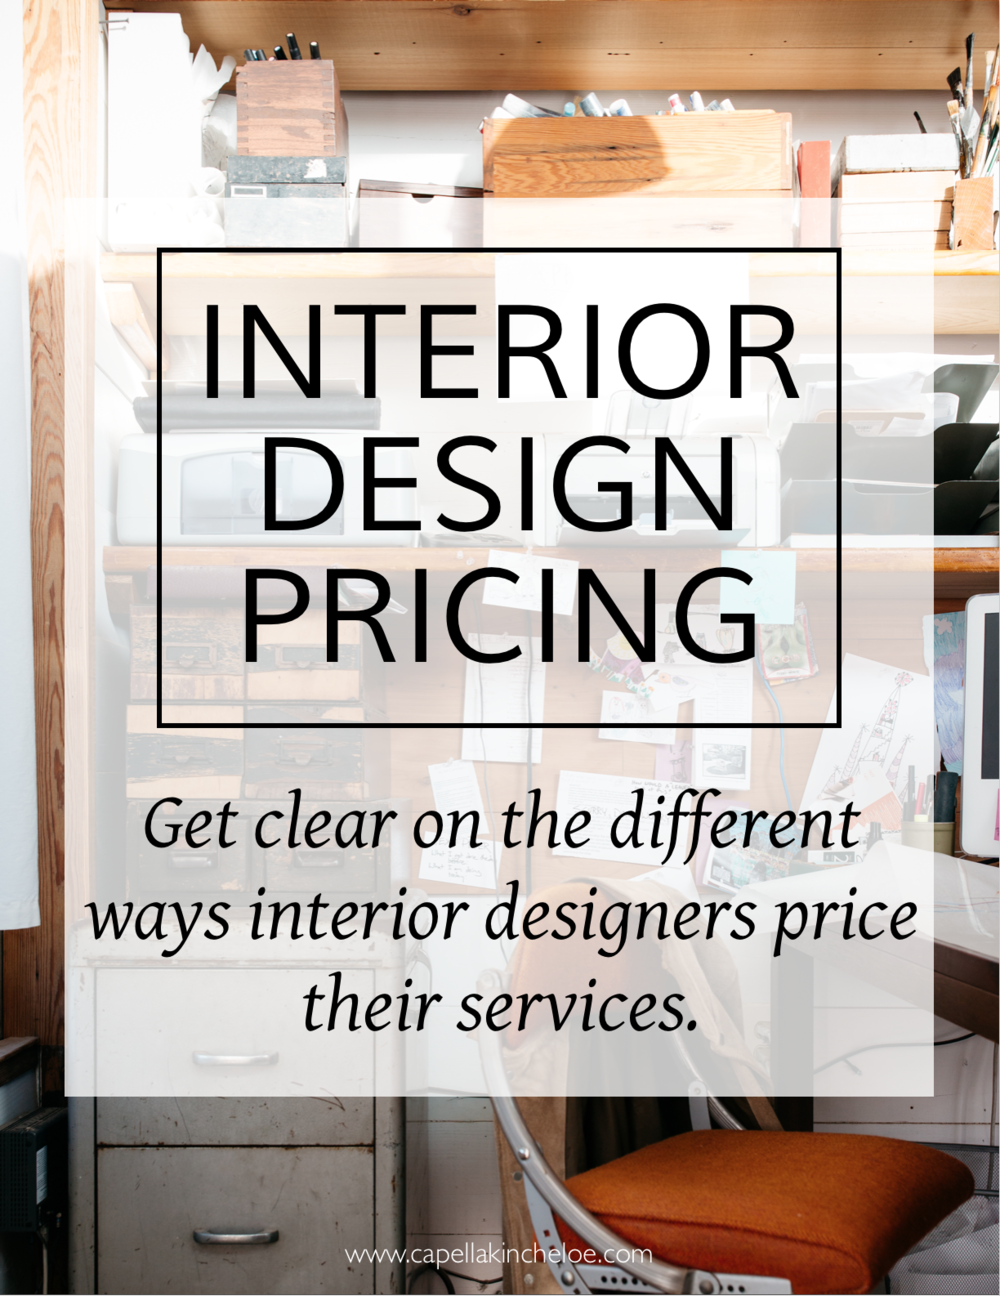 Pricing Interior Design Services Can Be Confusing. This Article Clears Up  All The Different Ways